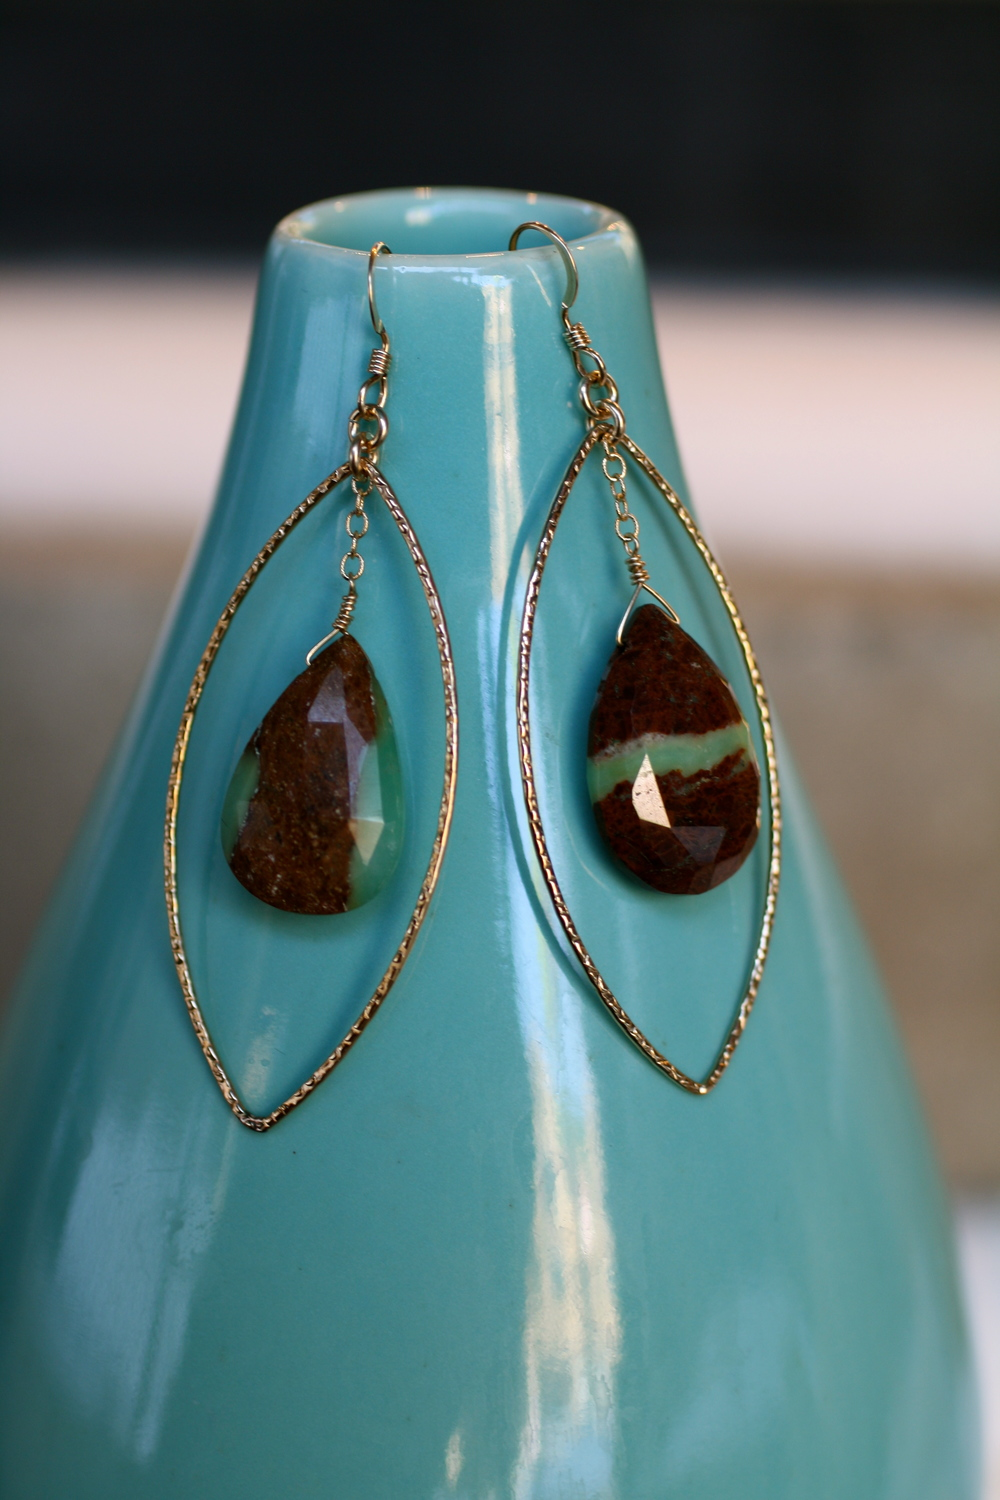 Eyes of the World Tear Drop Earring with Chrysoprase Dangle_08.jpg